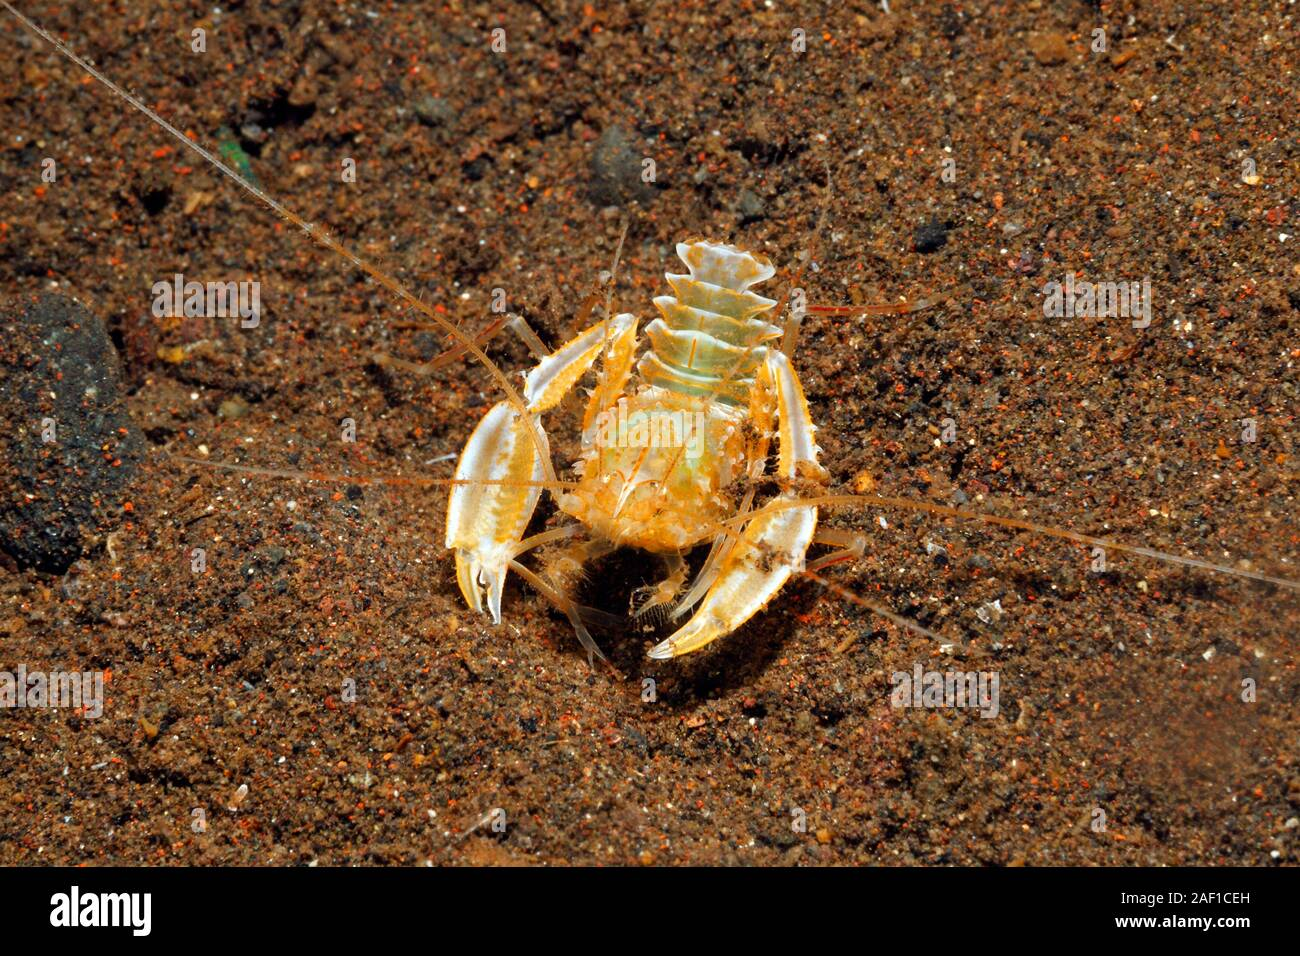 robust-boxer-shrimp-microprosthema-validum-tulamben-bali-indonesia-bali-sea-indian-ocean-2AF1CEH.jpg